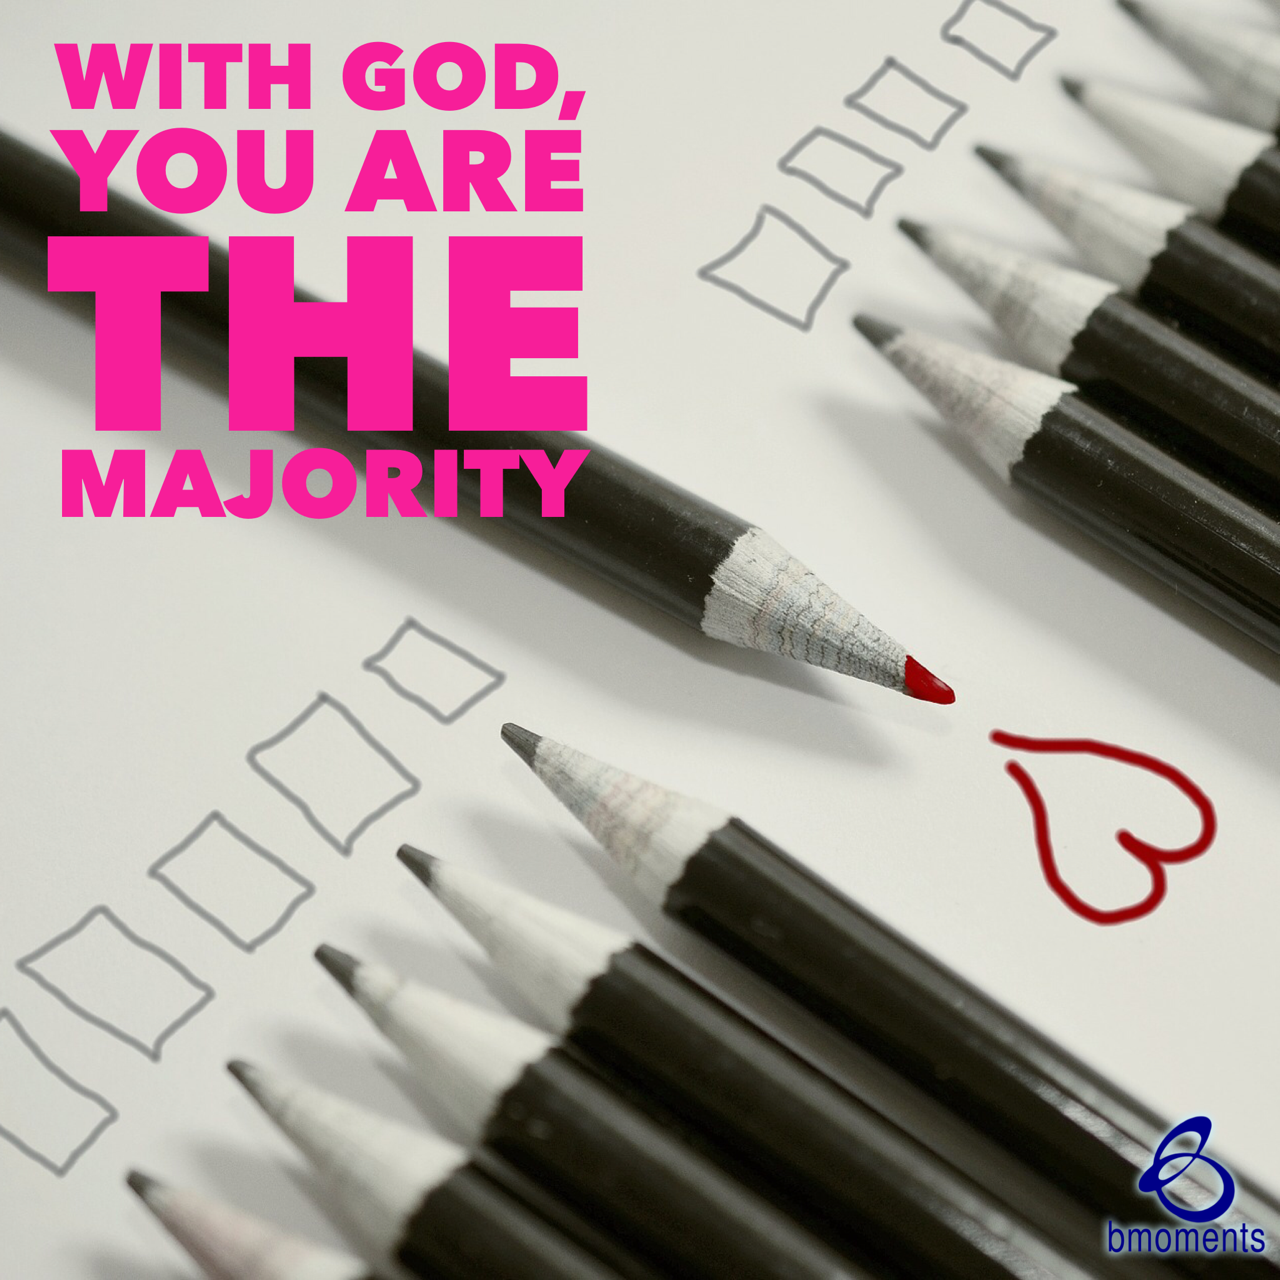 Your Minority Is the Majority with God